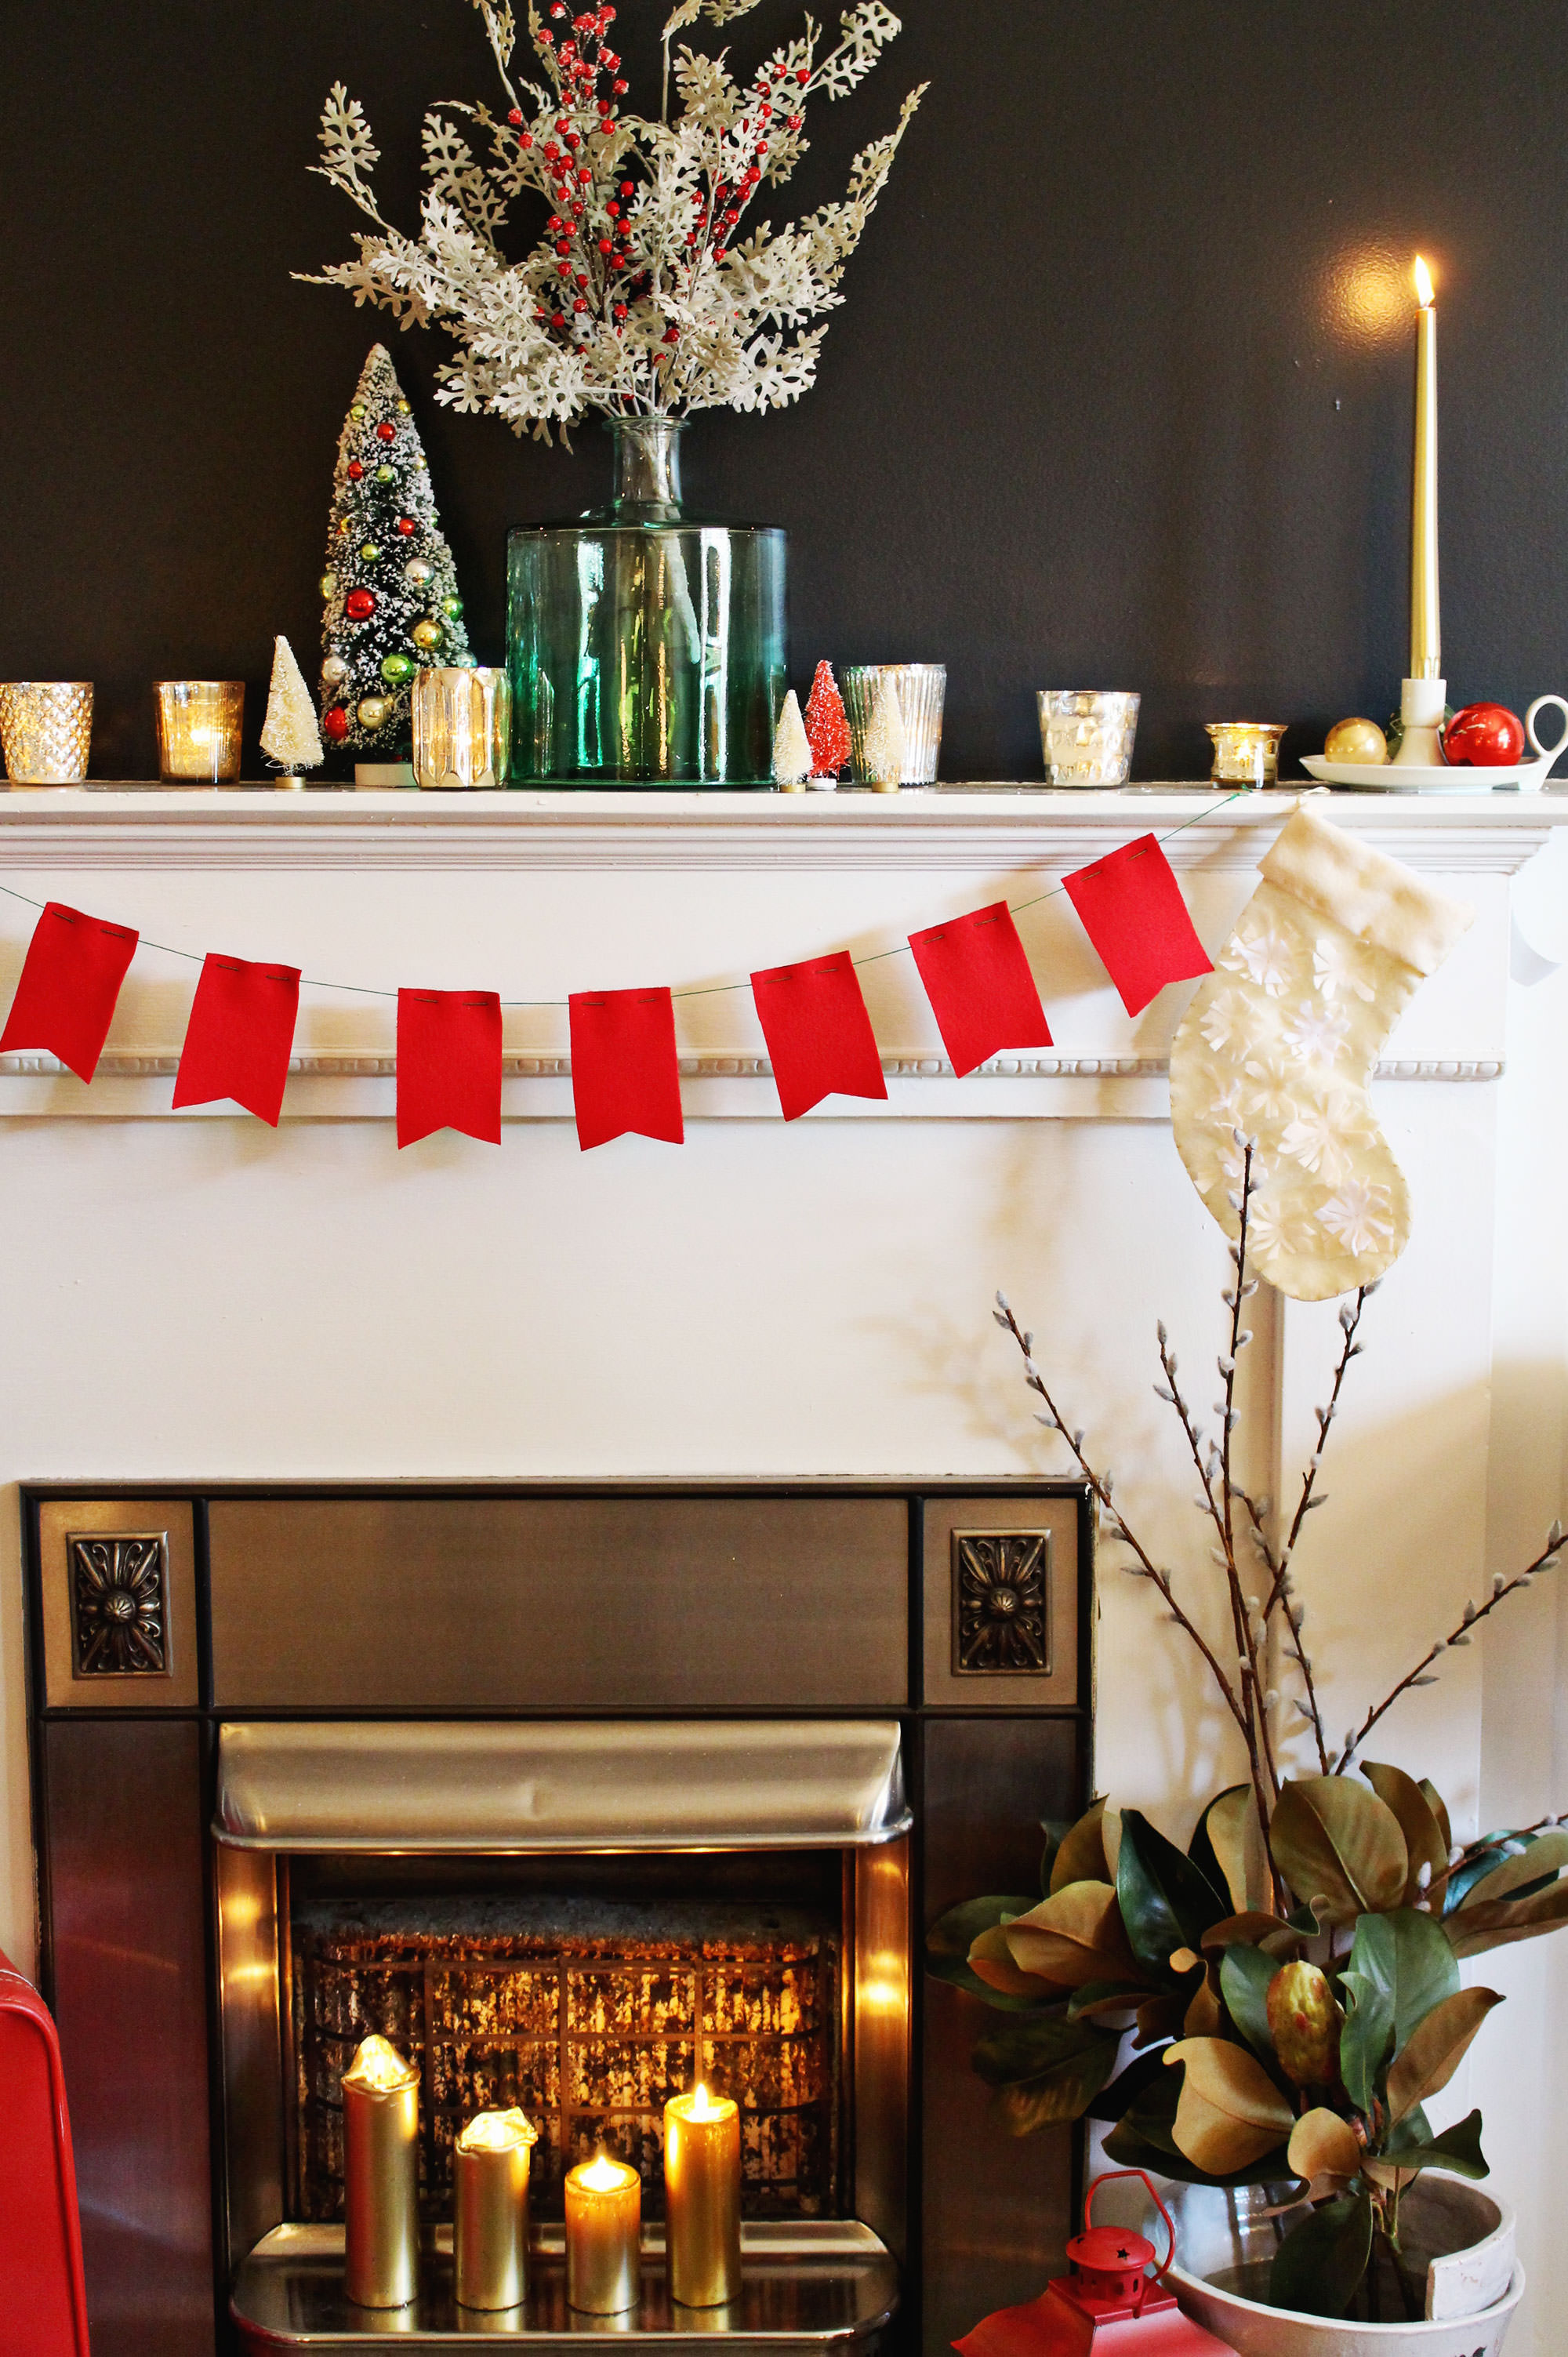 Holiday Mantel decor with antique accents